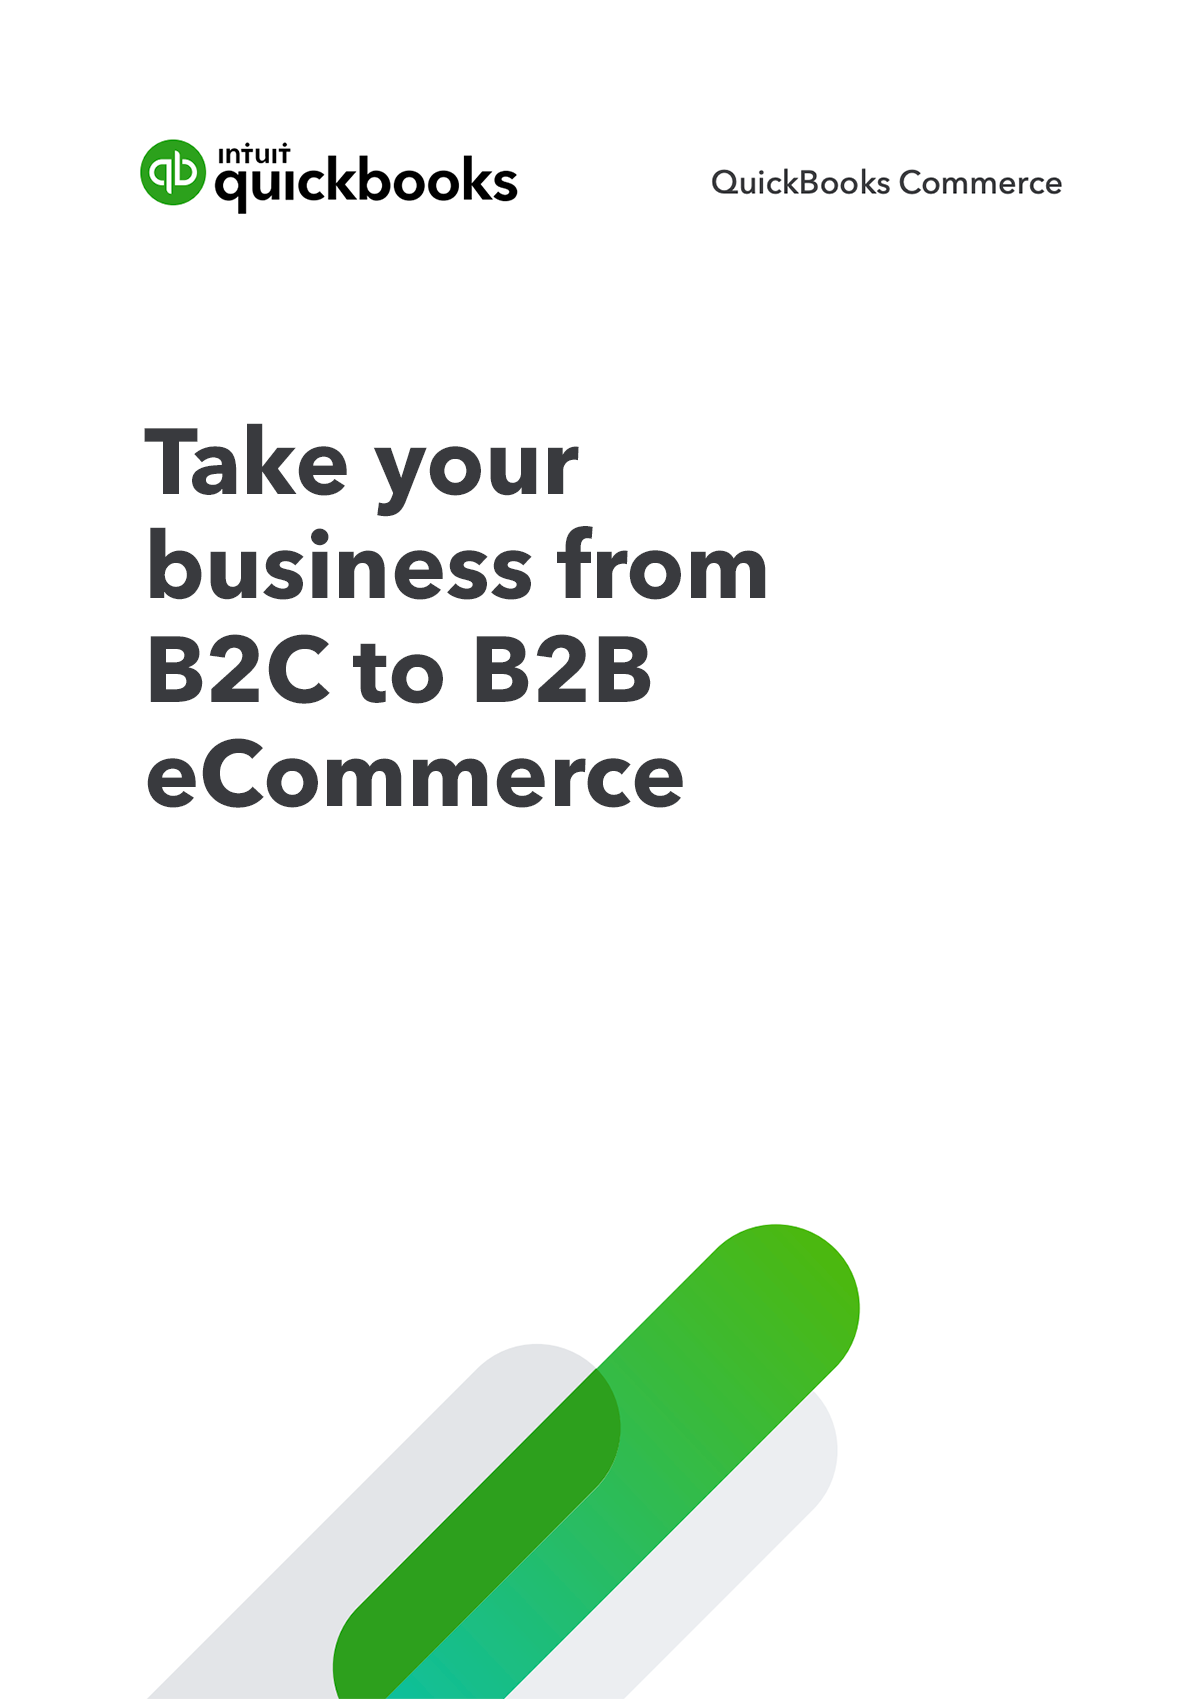 Take your business from B2C to B2B